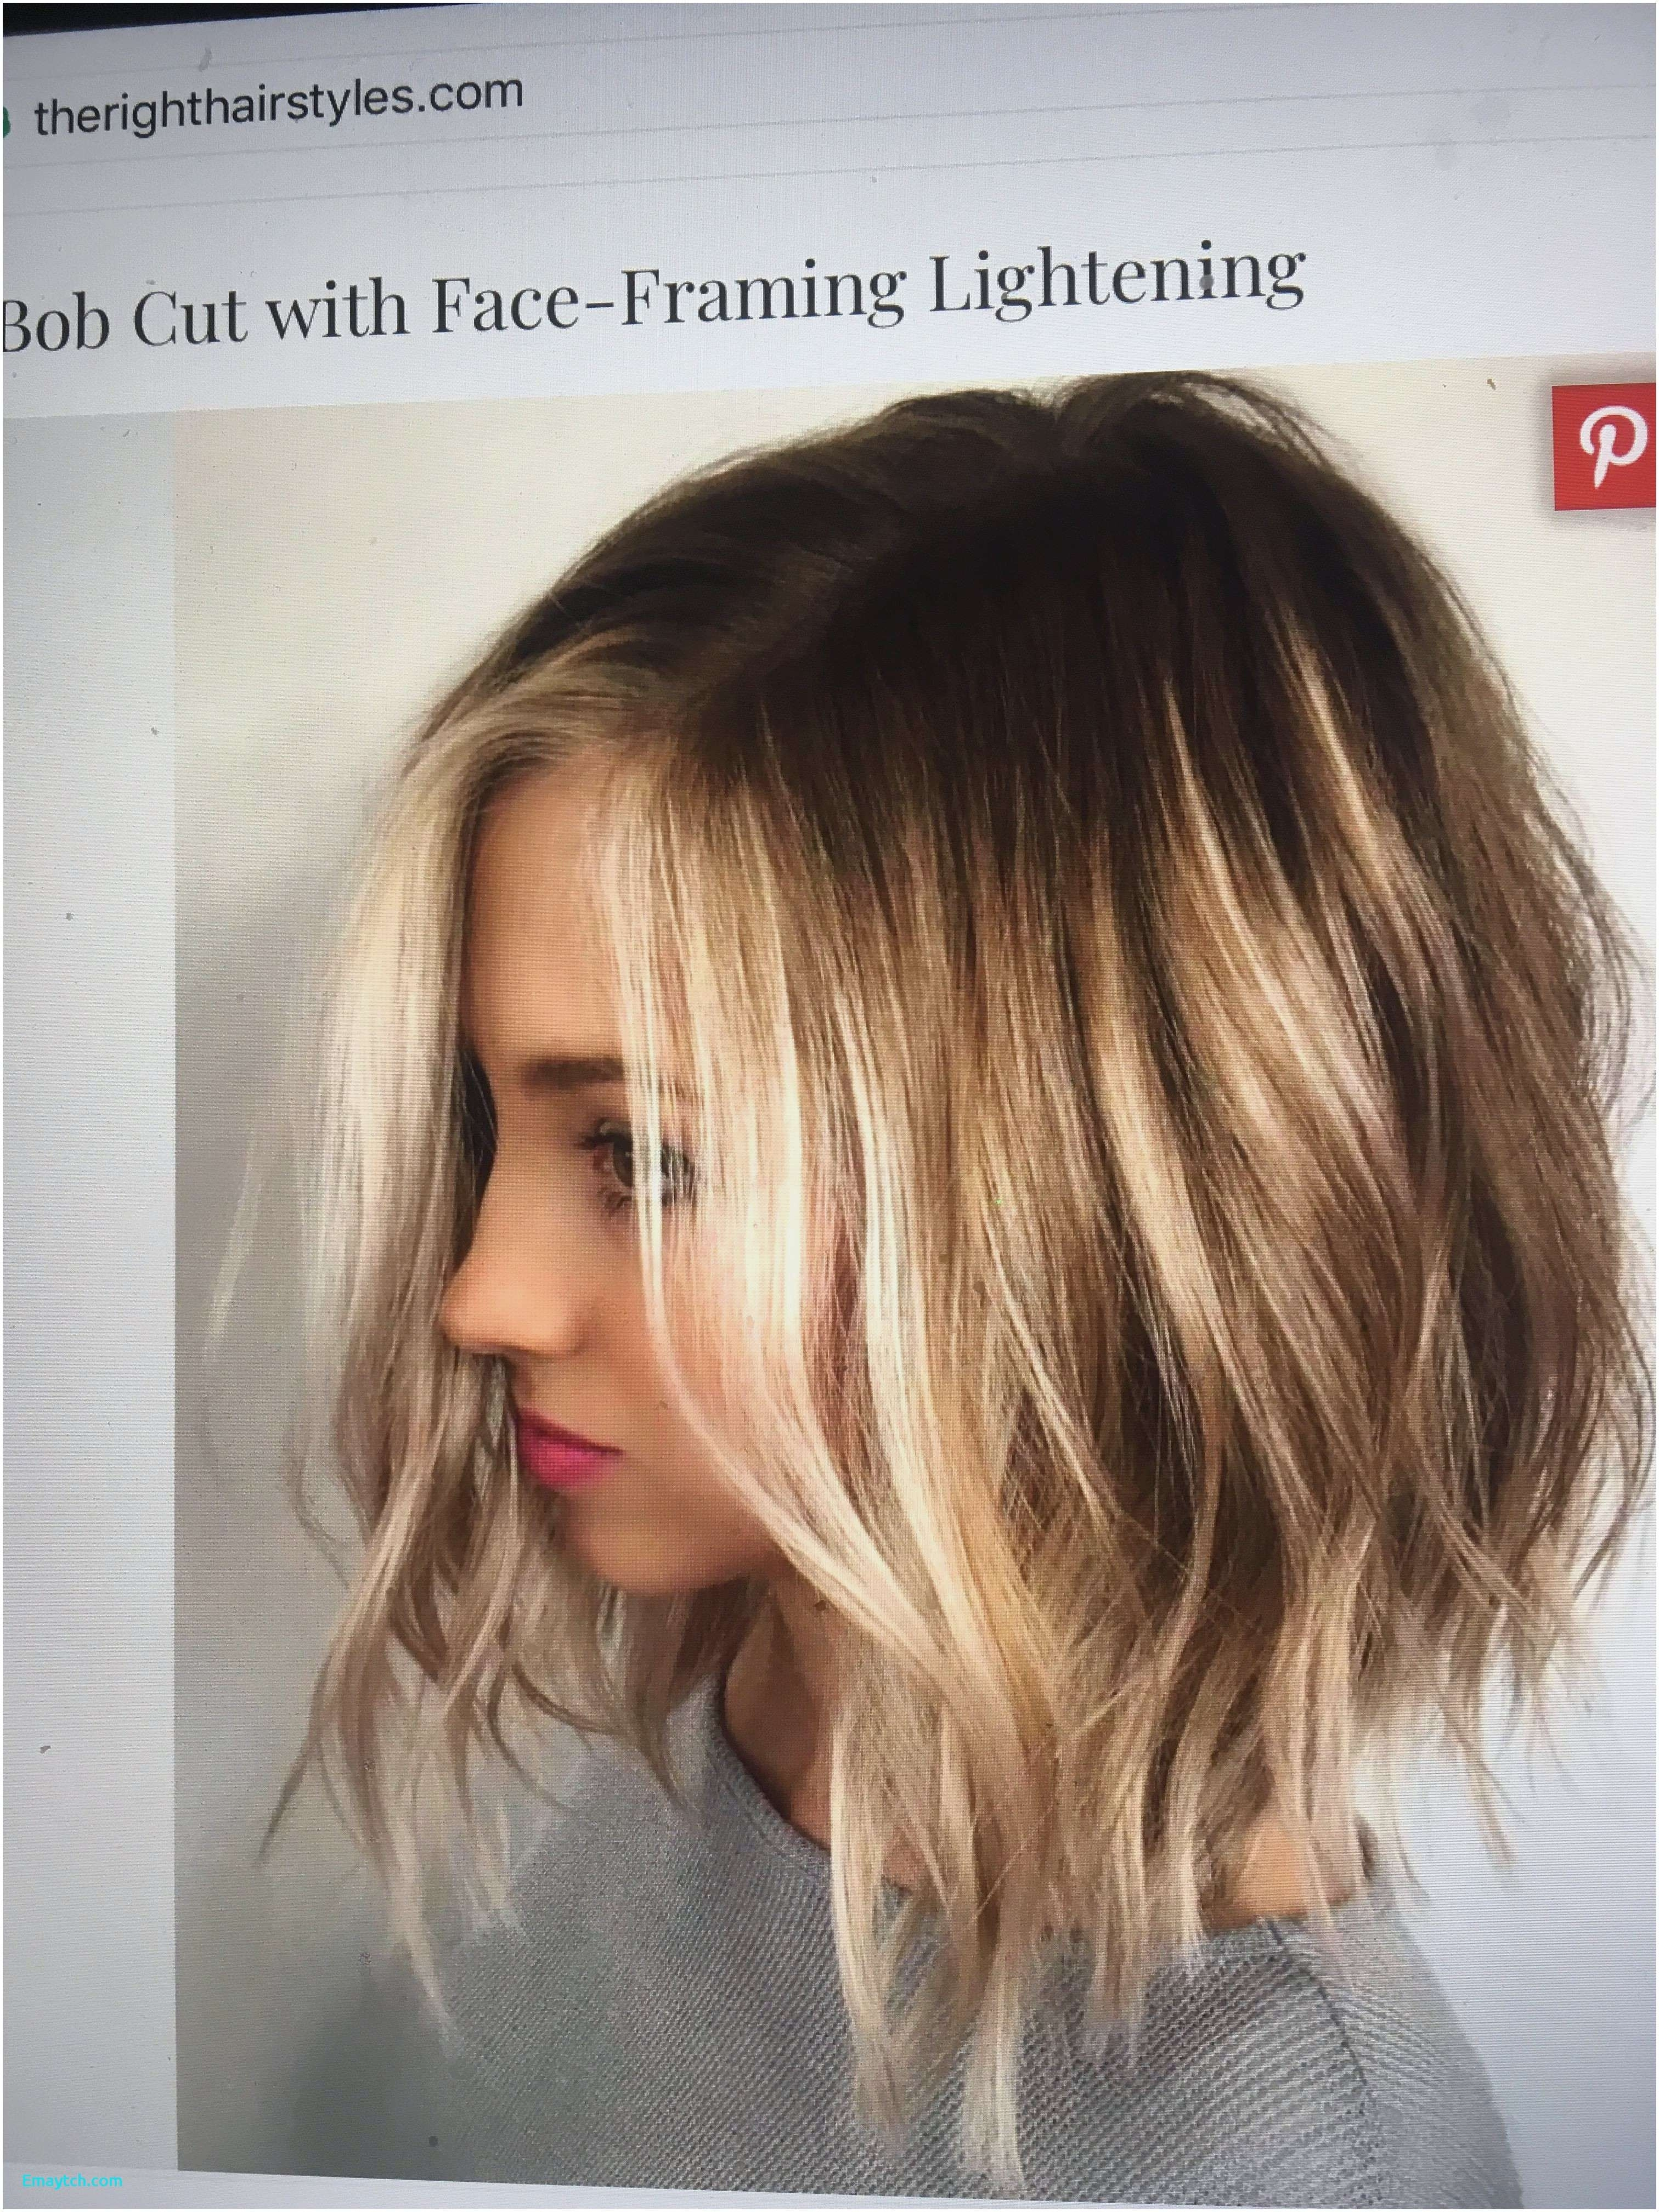 Hairstyles : Short Hairstyles For Round Faces And Thick Hair with Short Hair For Asian Round Face